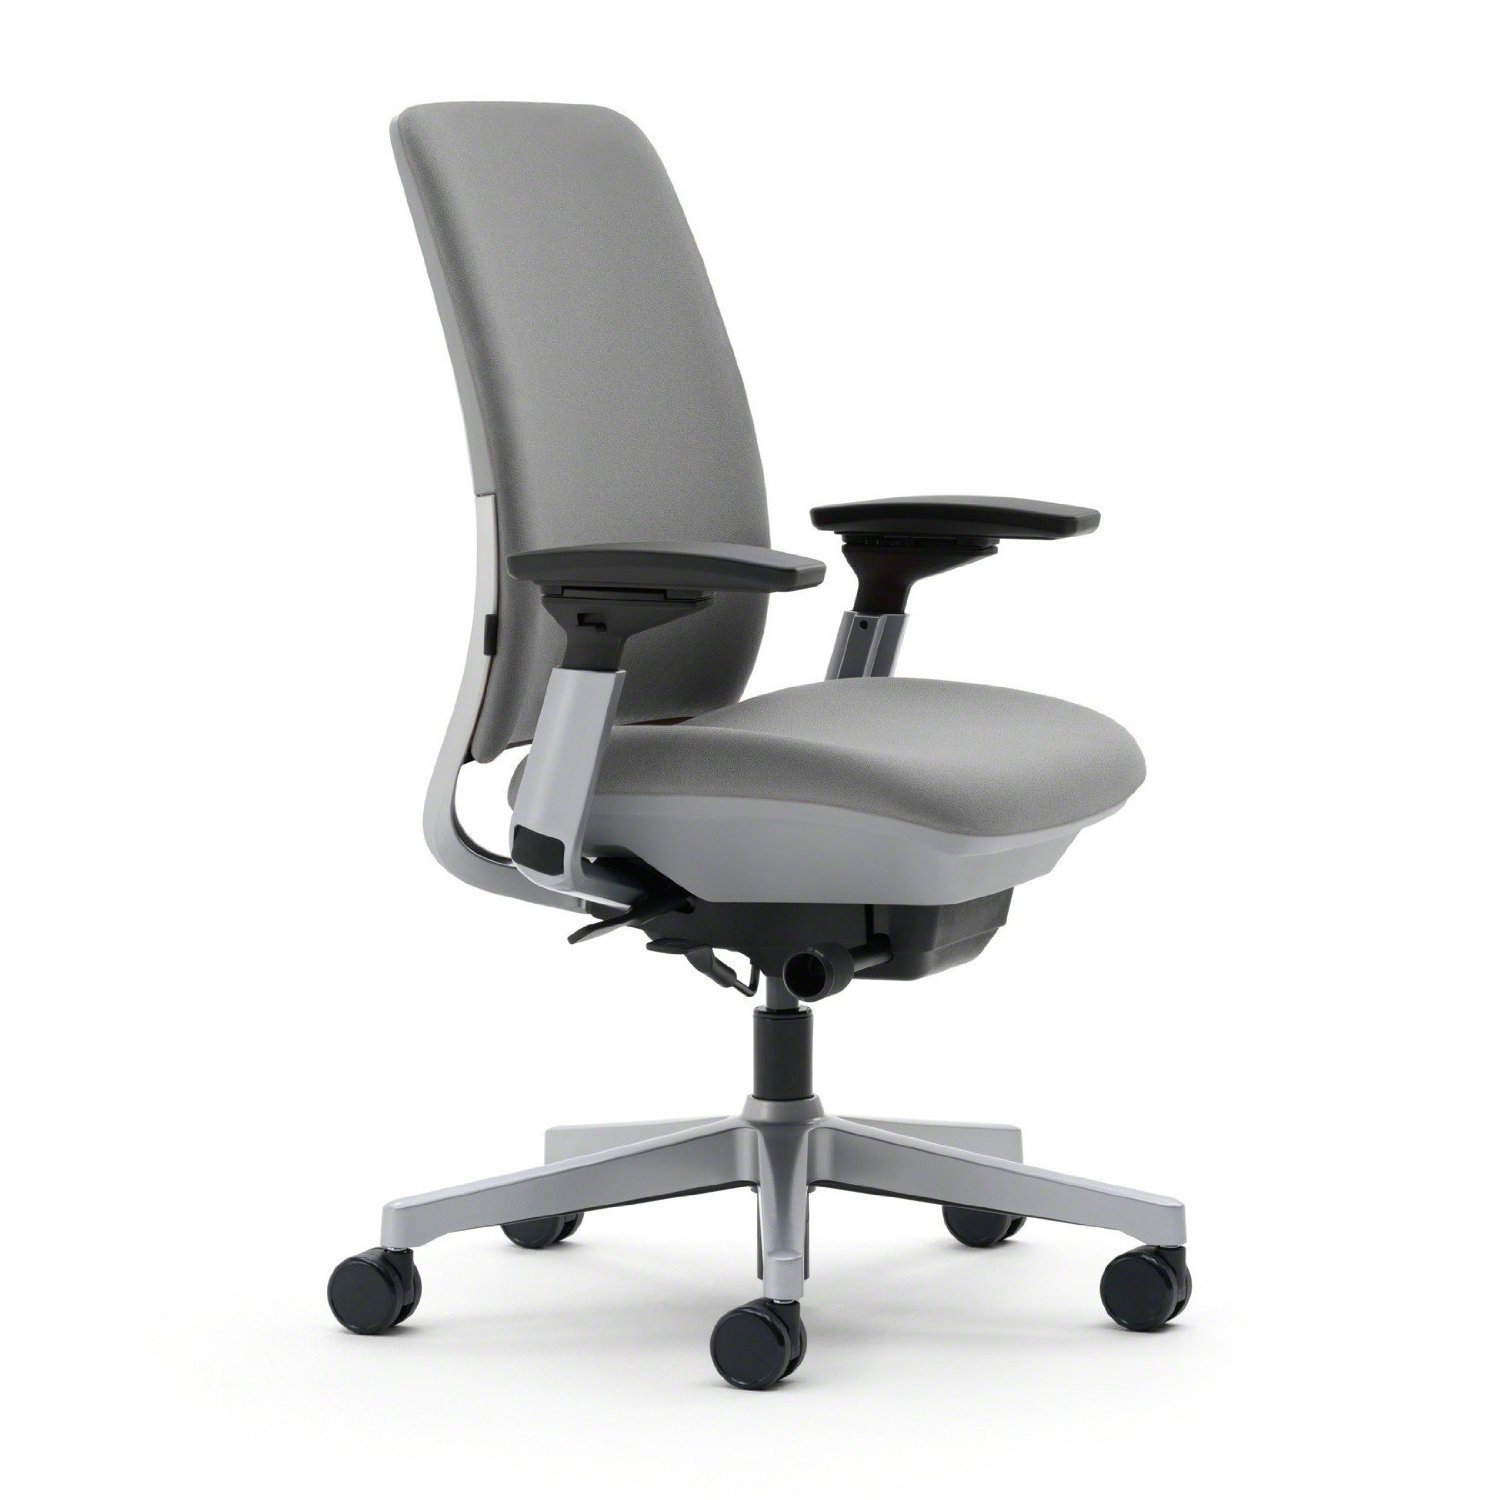 10 best ergonomic office chair for lower back pain in 2017 for all